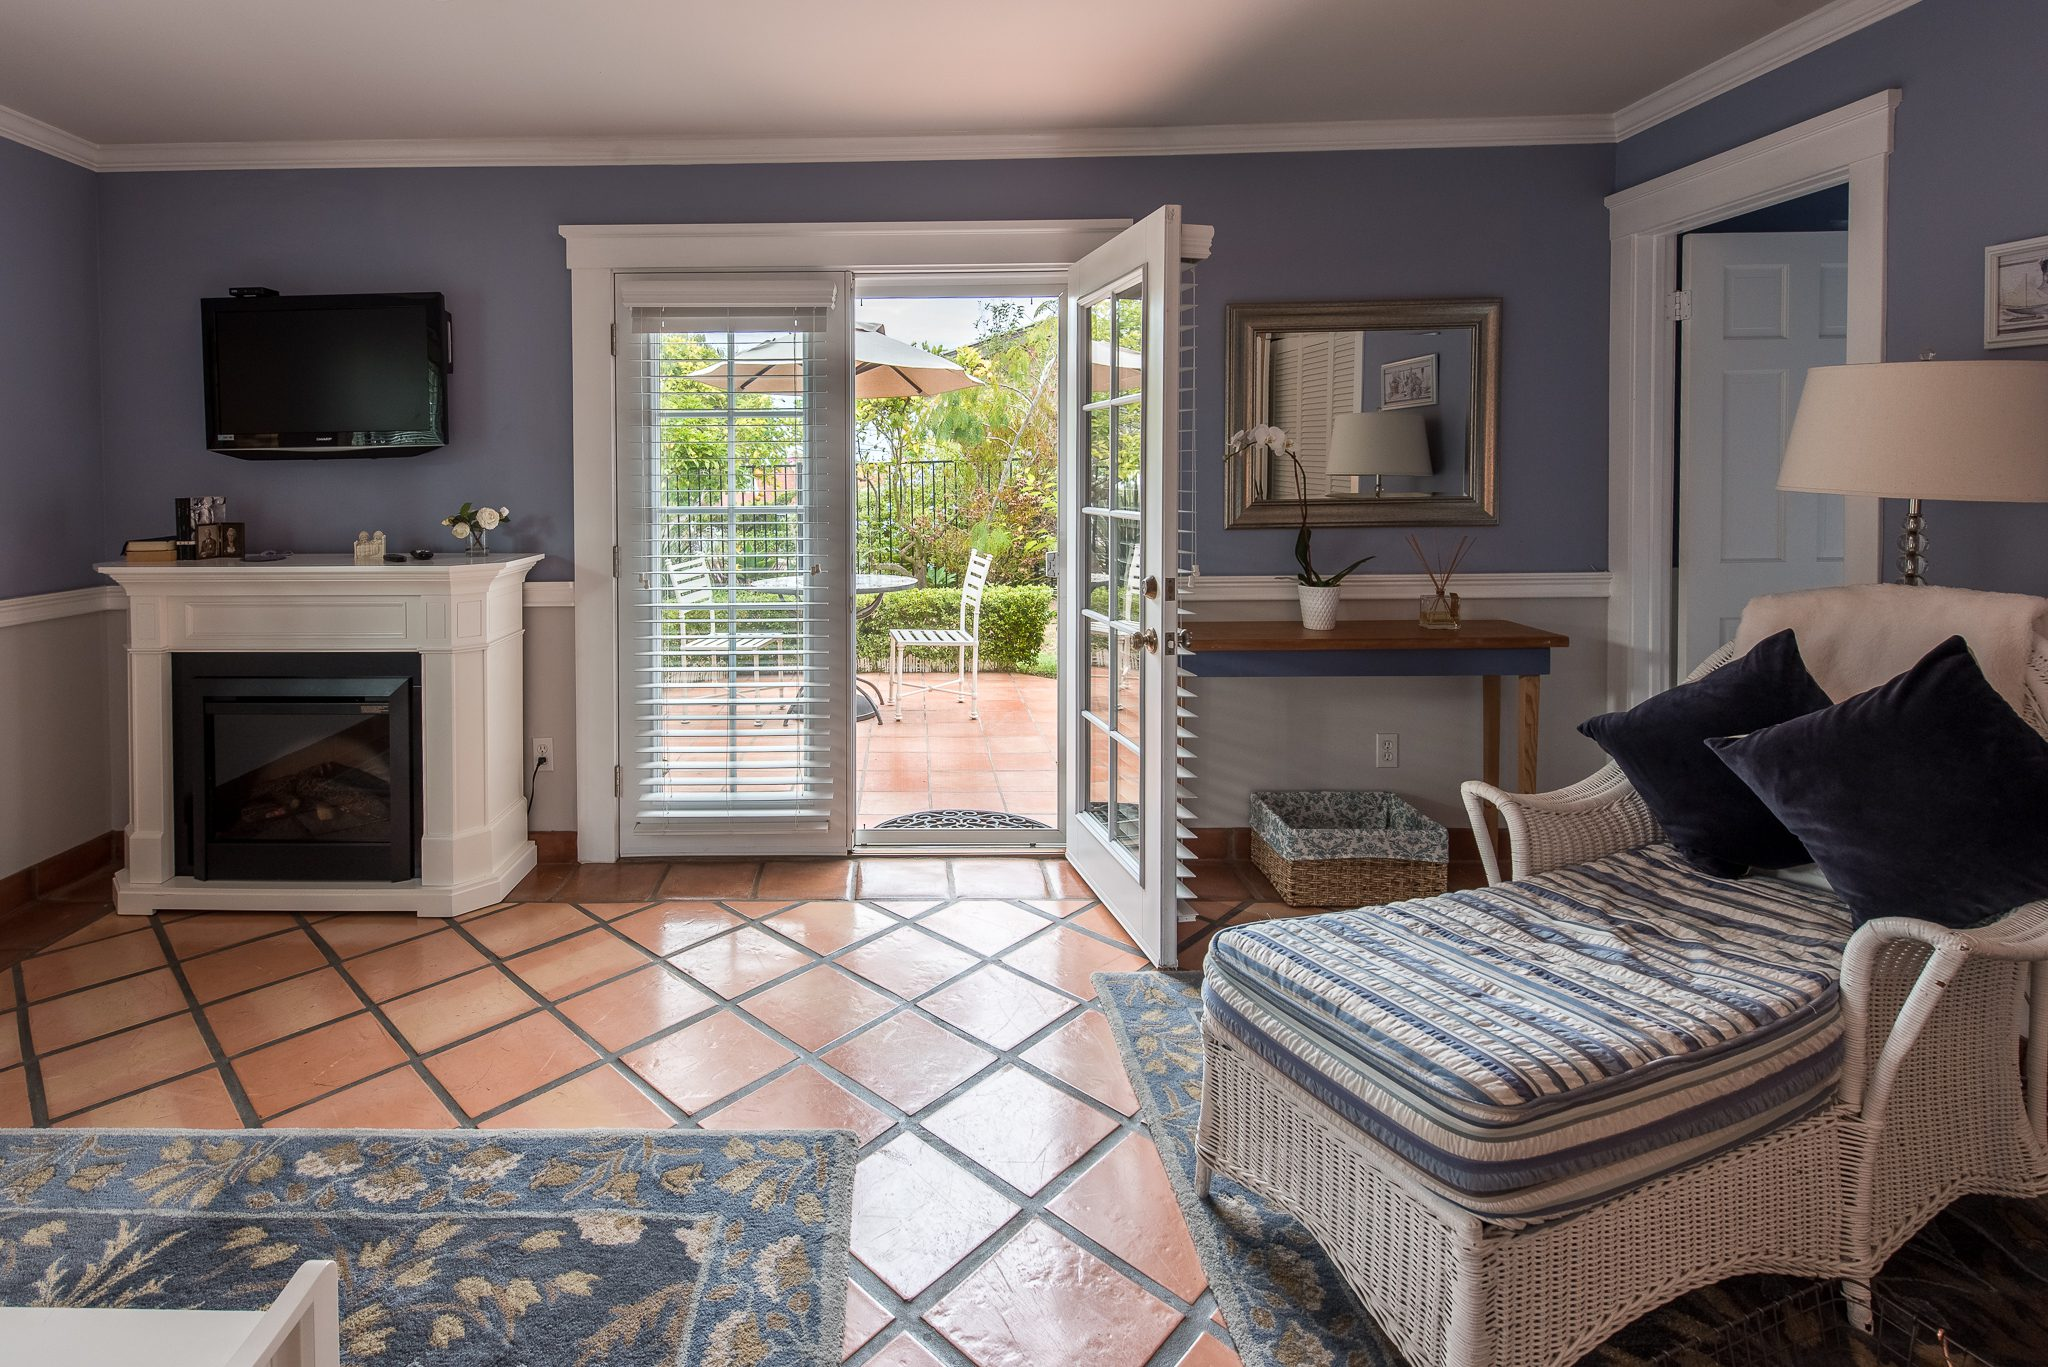 Nantucket Beach Cottage - Kate Stanton Bed and Breakfast, San Diego Area